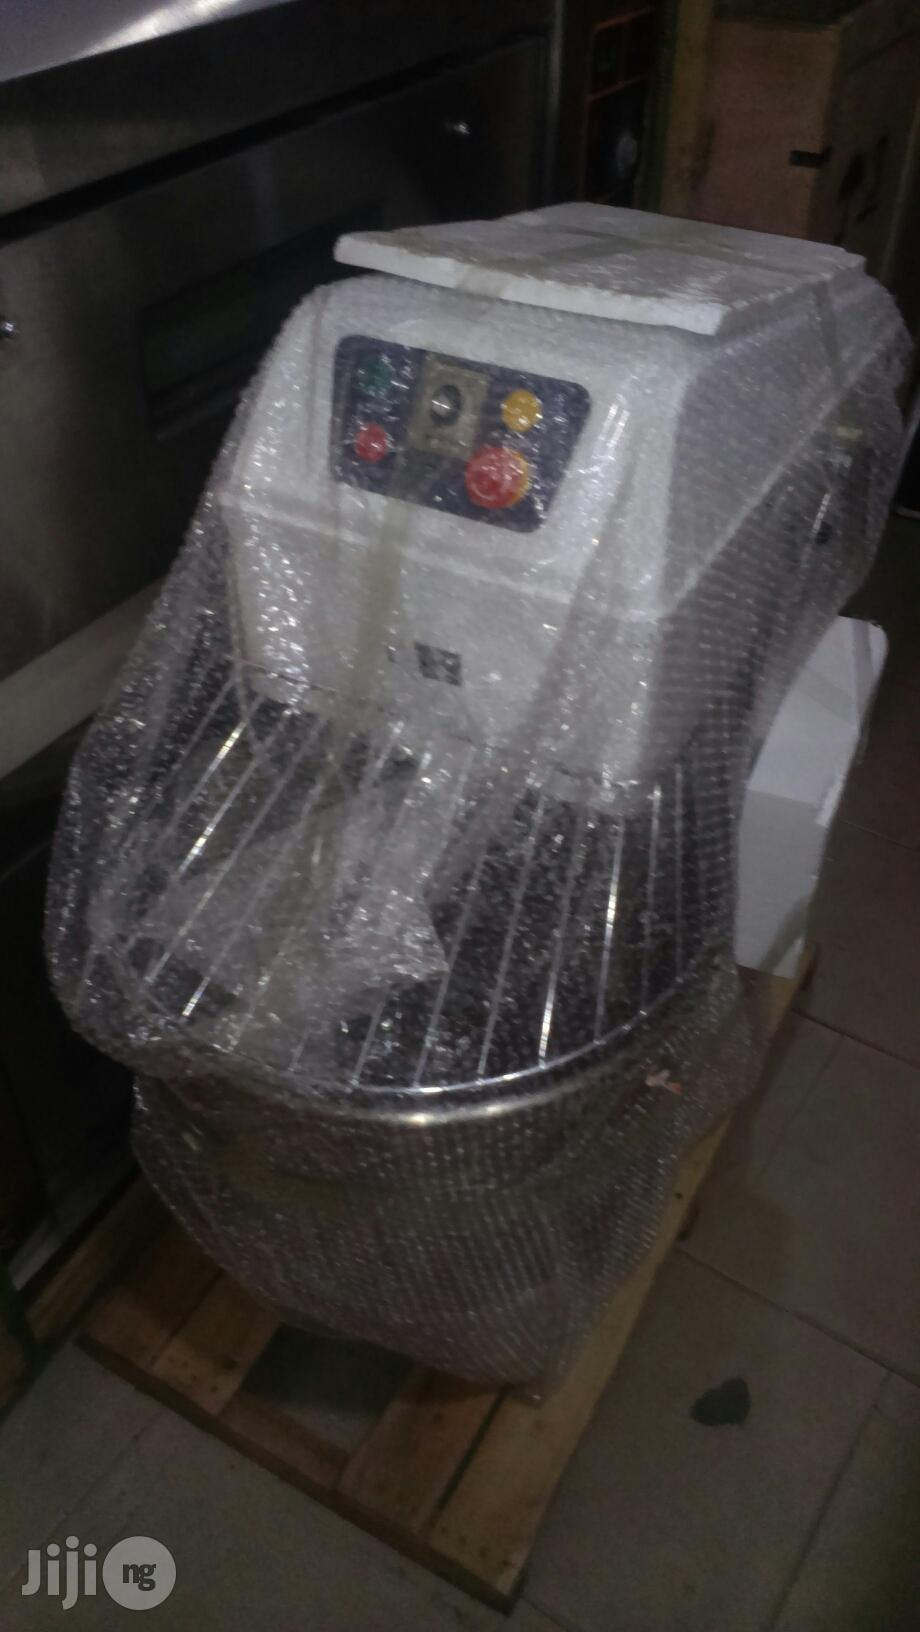 Spiral Mixer   Restaurant & Catering Equipment for sale in Ojo, Lagos State, Nigeria